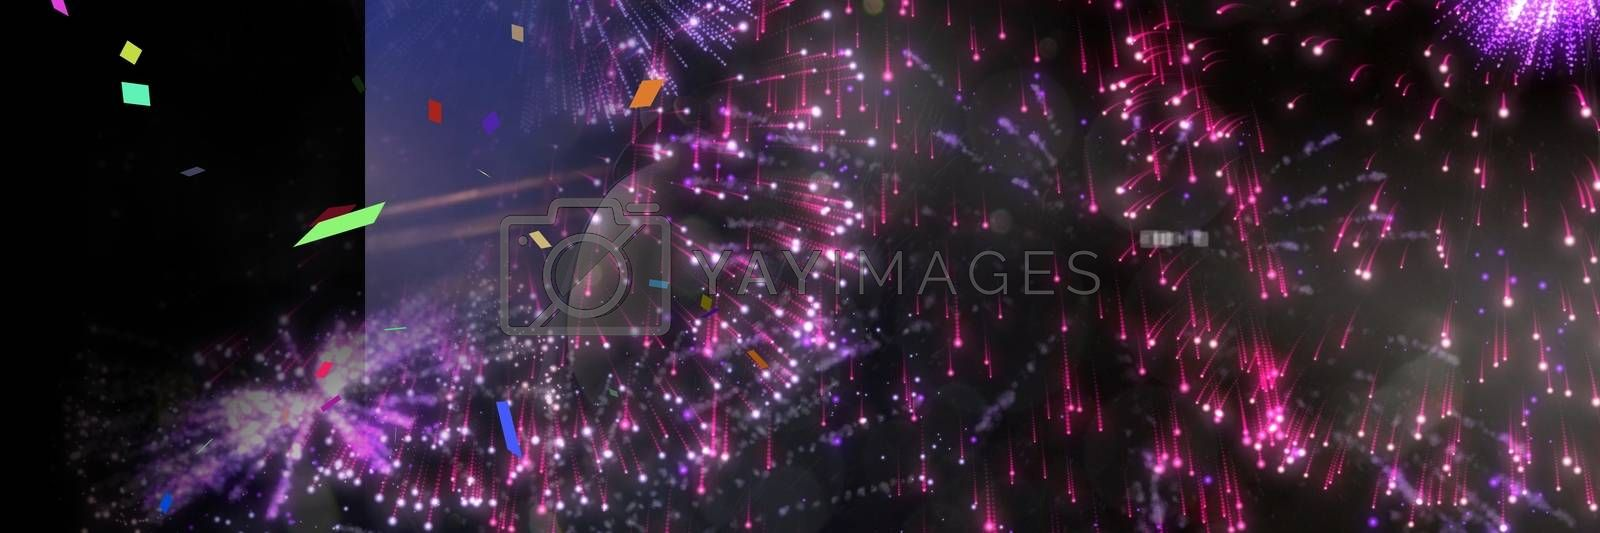 Digital composite of people at concert with transition